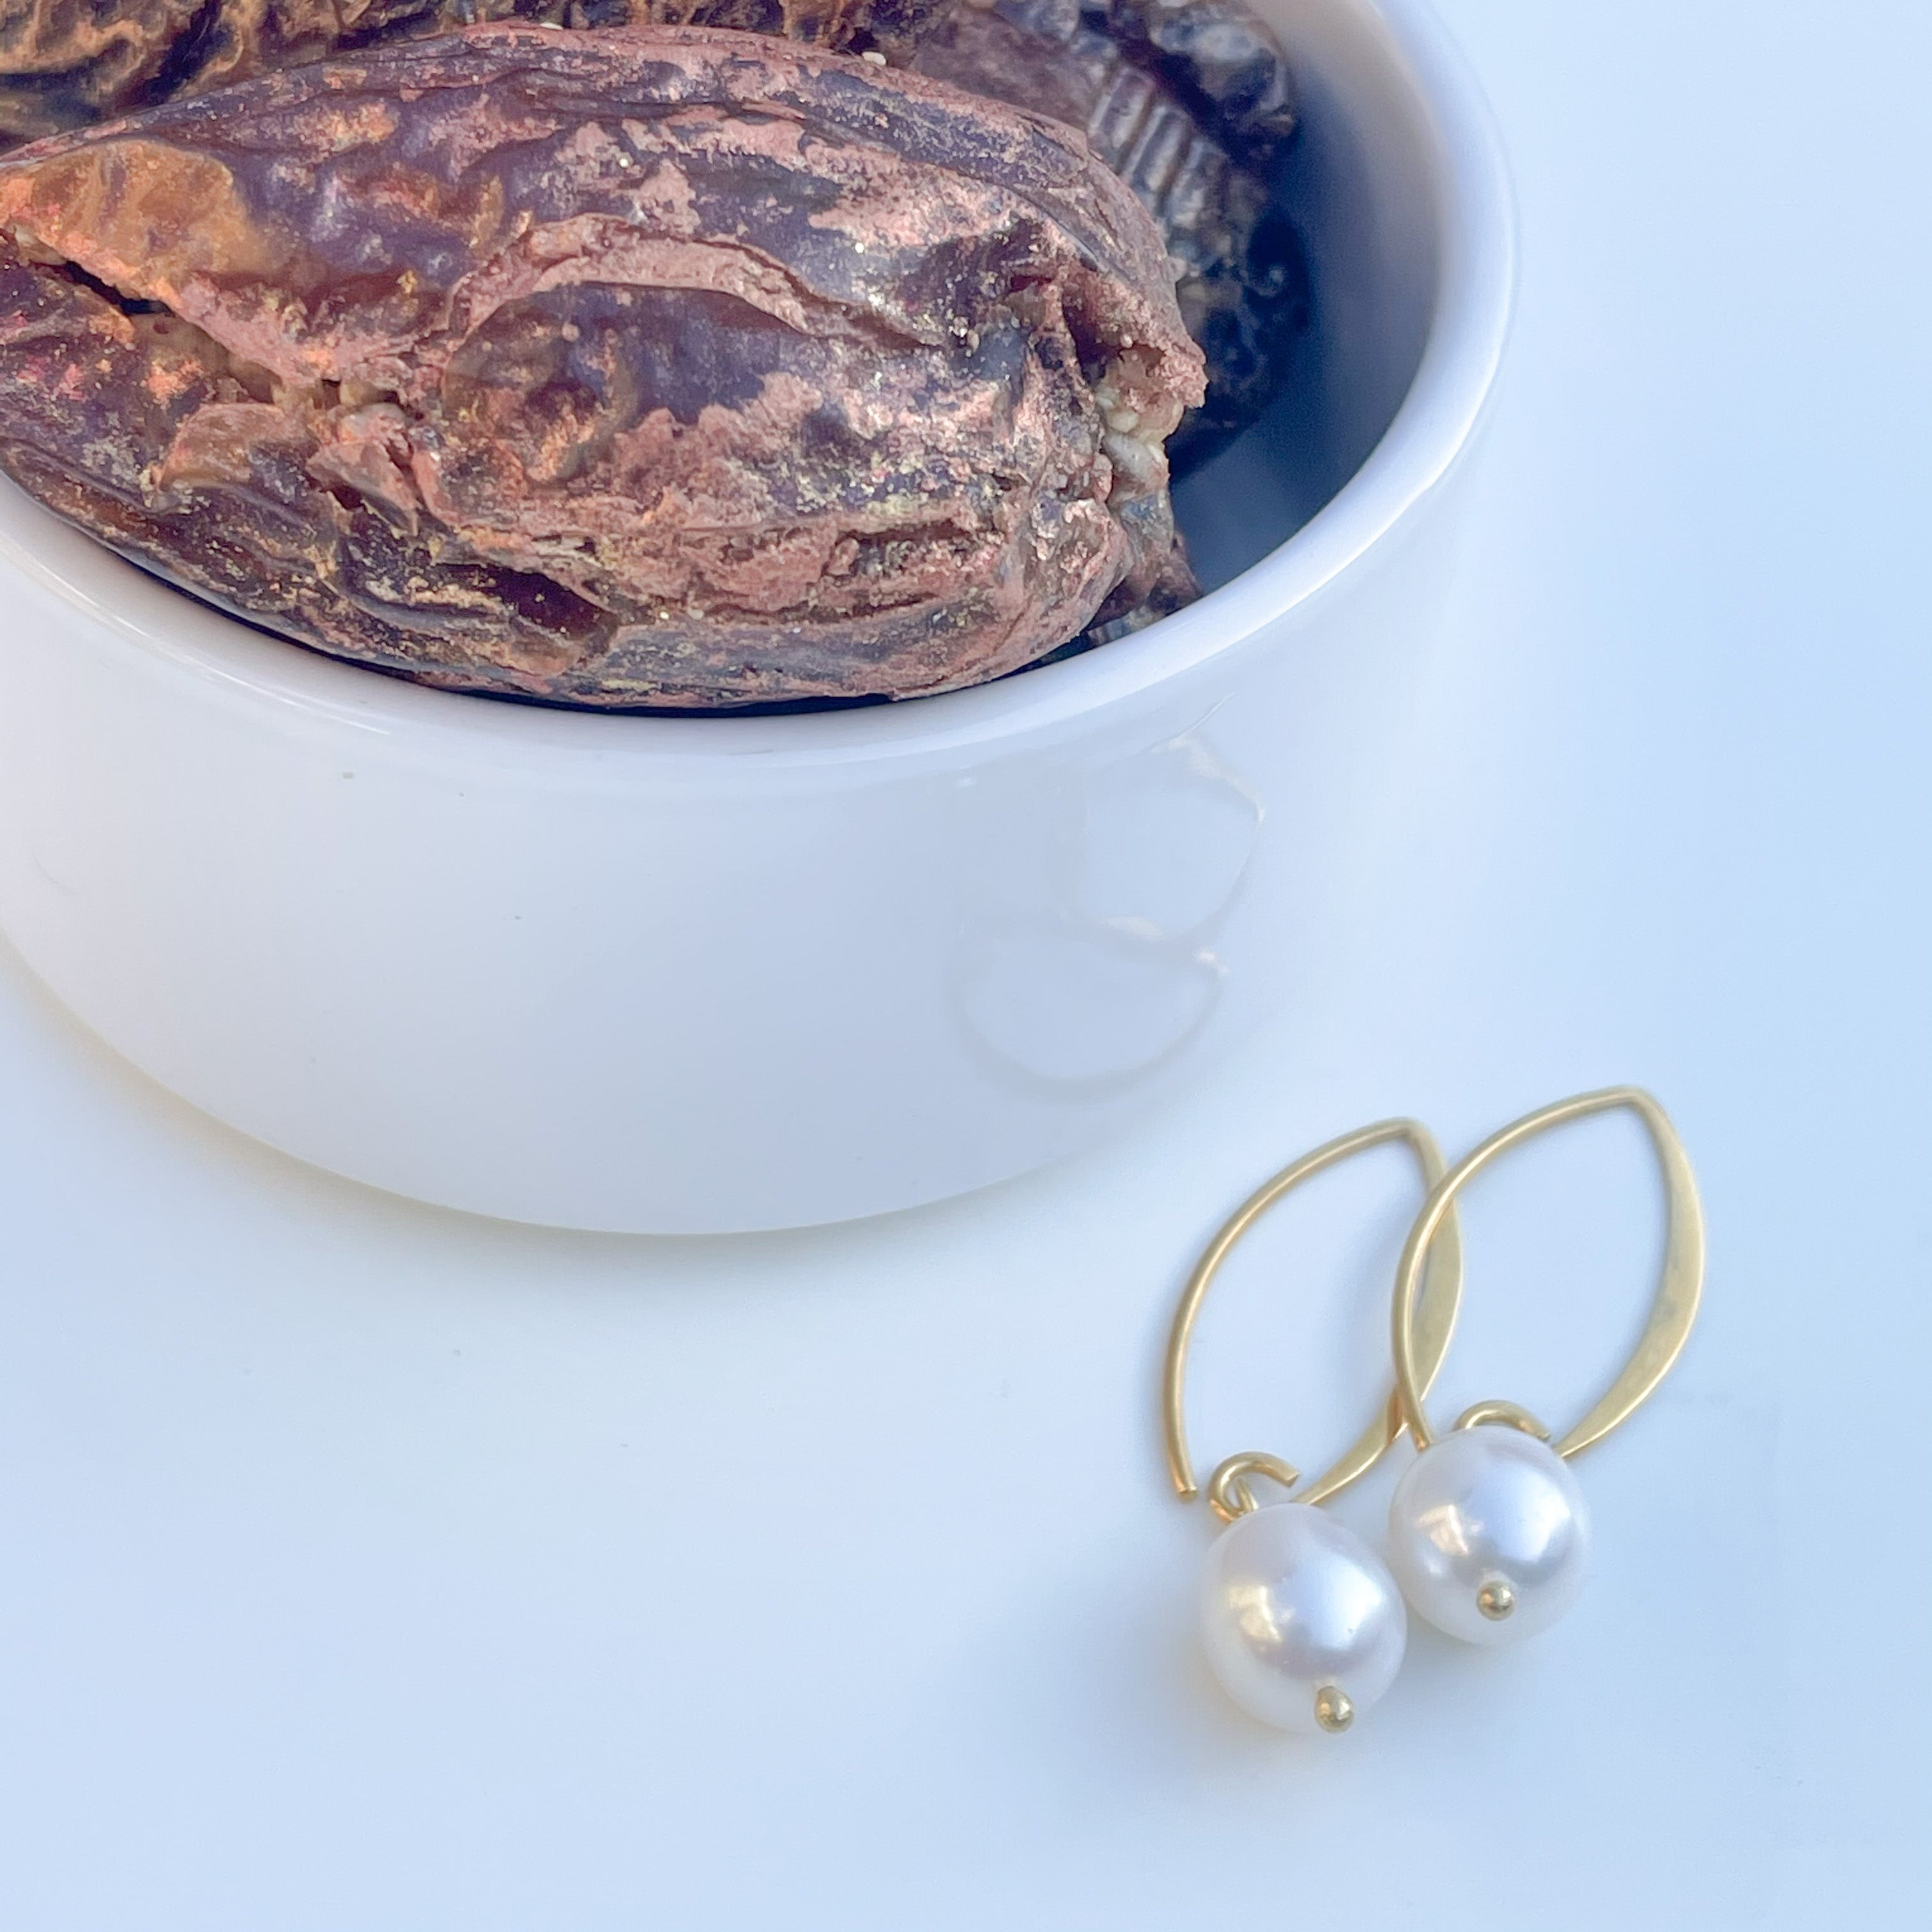 Pearl Drop Earrings in Gold Plated Sterling Silver with a box of 4 Stuffed Medjool Dates